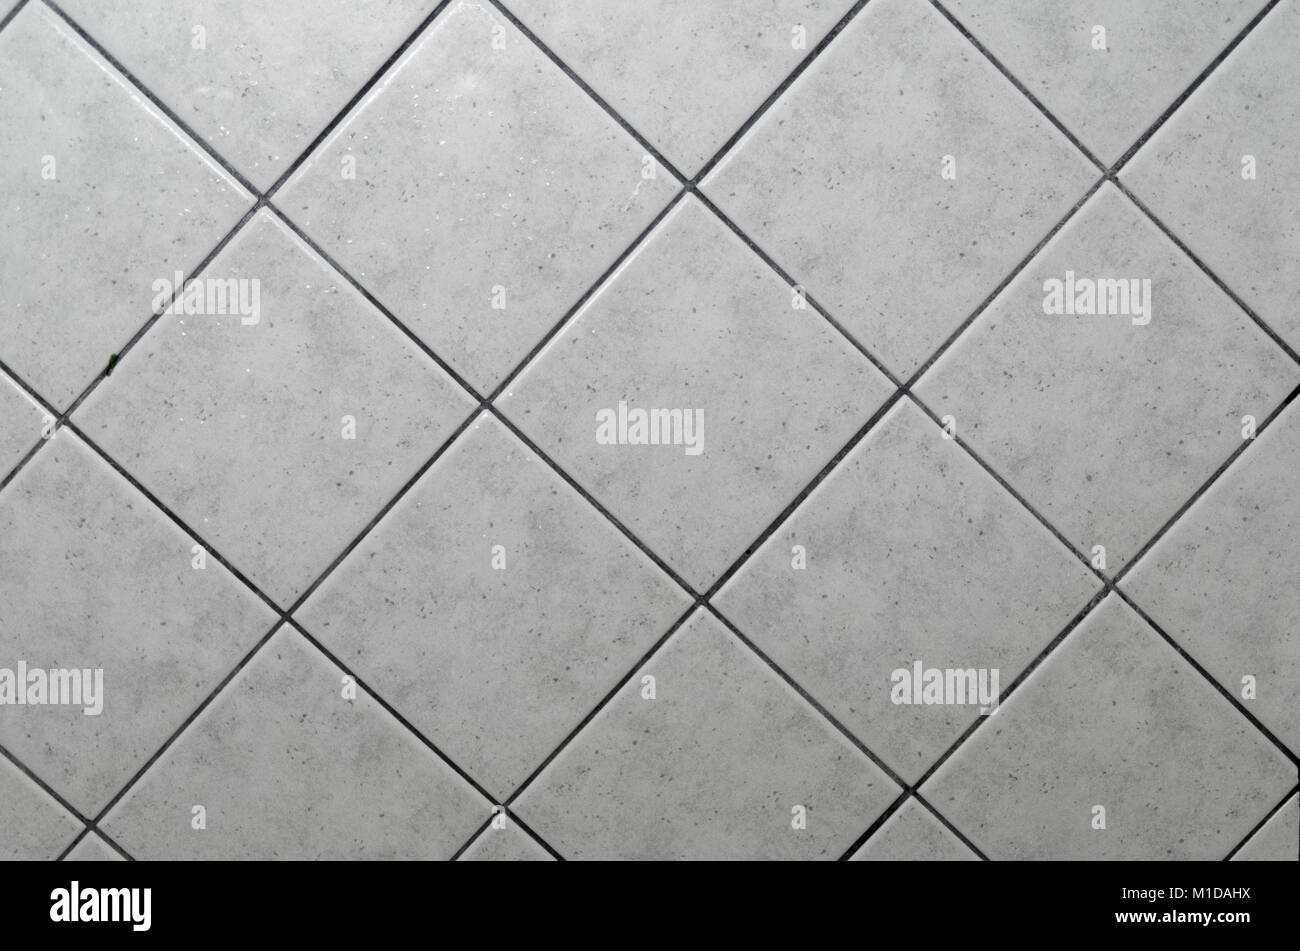 Tiles Texture Bathroom Stock Photos Tiles Texture Bathroom Stock - Dah tile